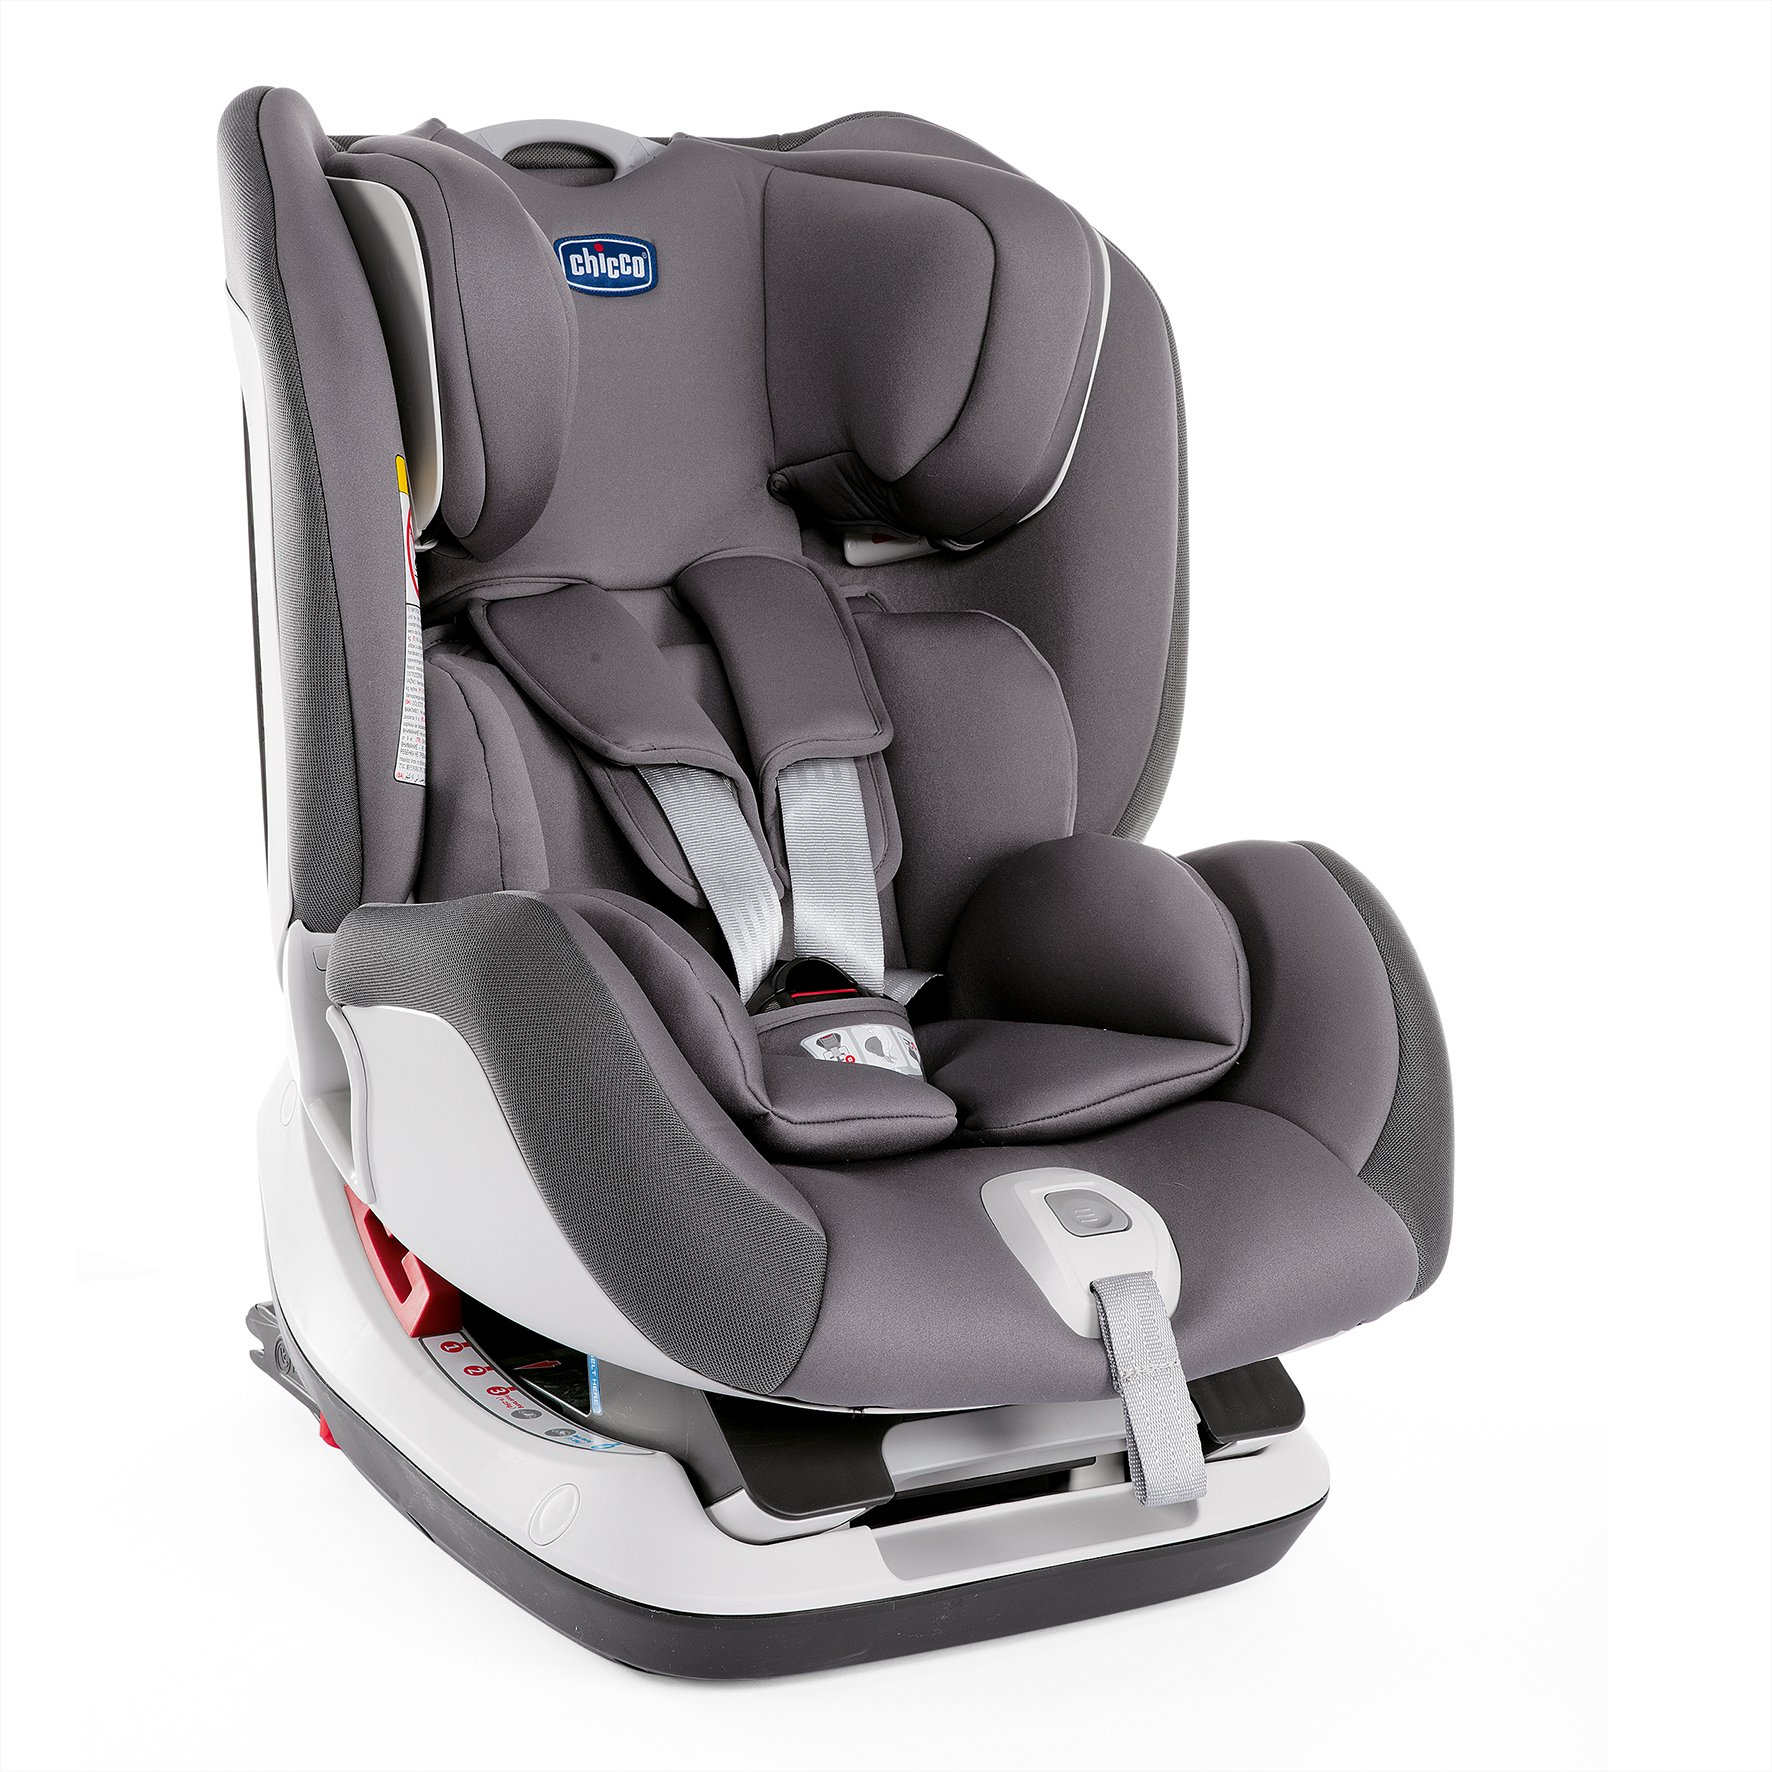 Chicco Child Car Seat Up 012 PEARL 2019